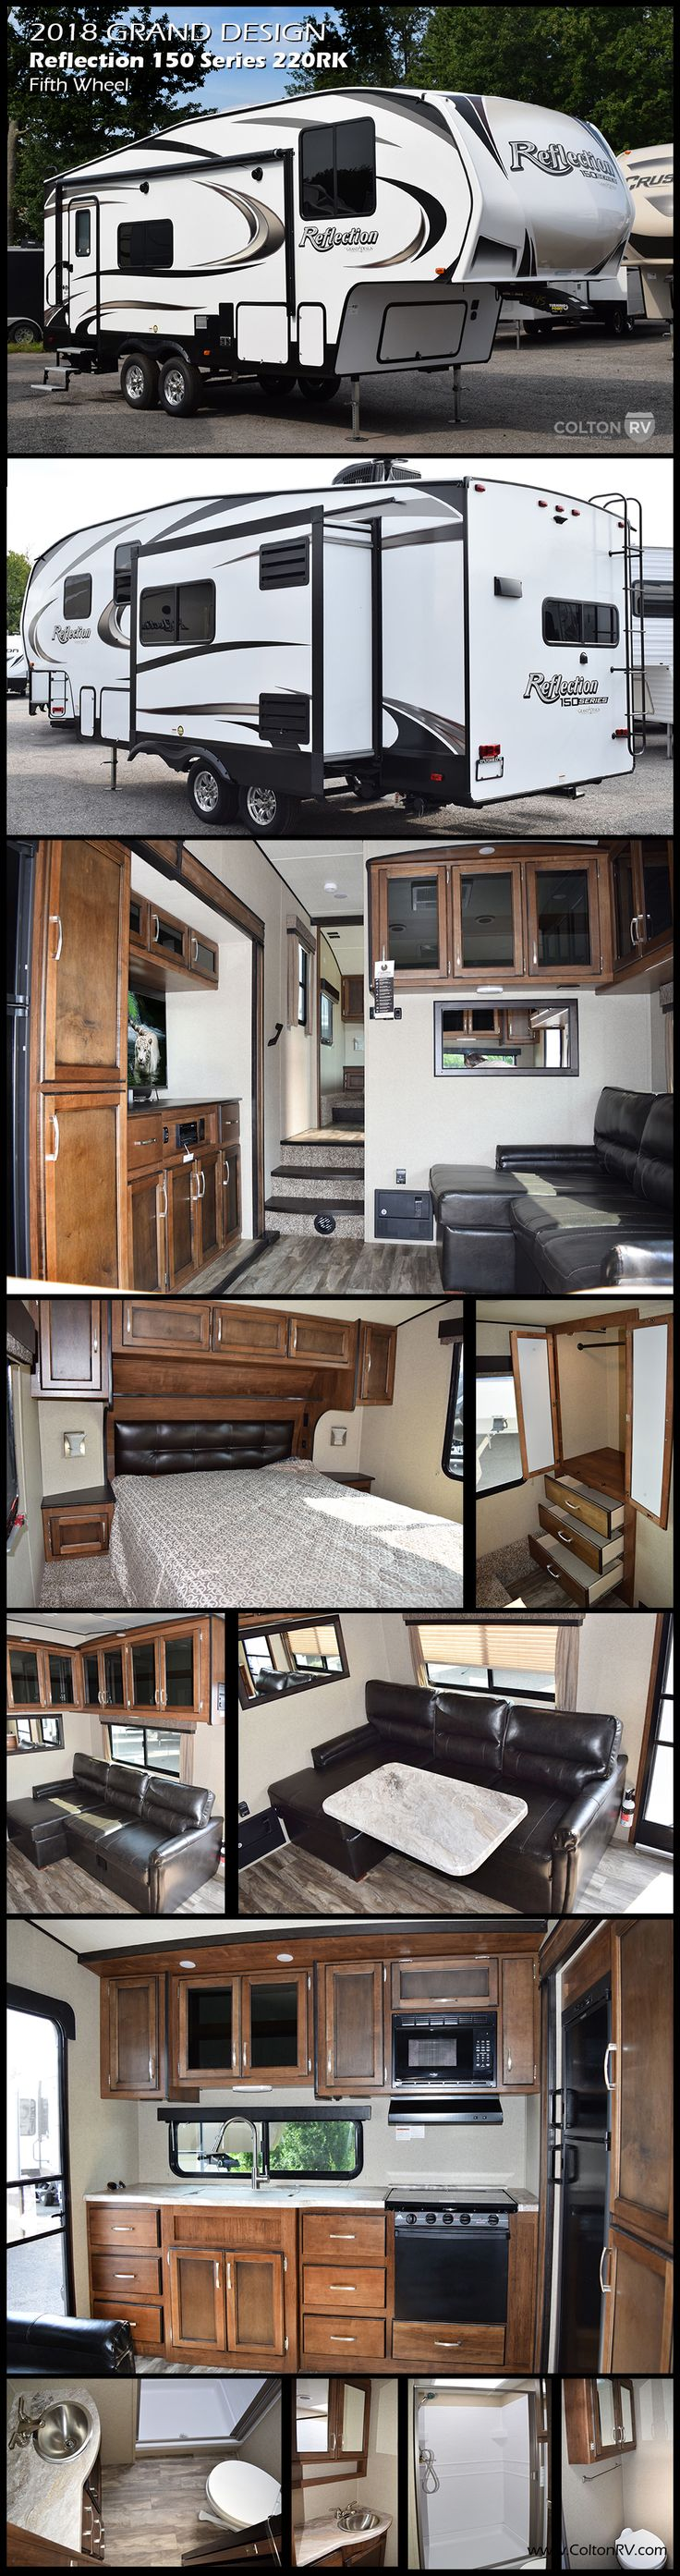 The Reflection 150 Series 220RK Fifth Wheel by Grand Design delivers maximum living without maxing out your truck. The towability, spacious interior, and luxury features of the 220RK model are redefining what it means to be half-ton towable.